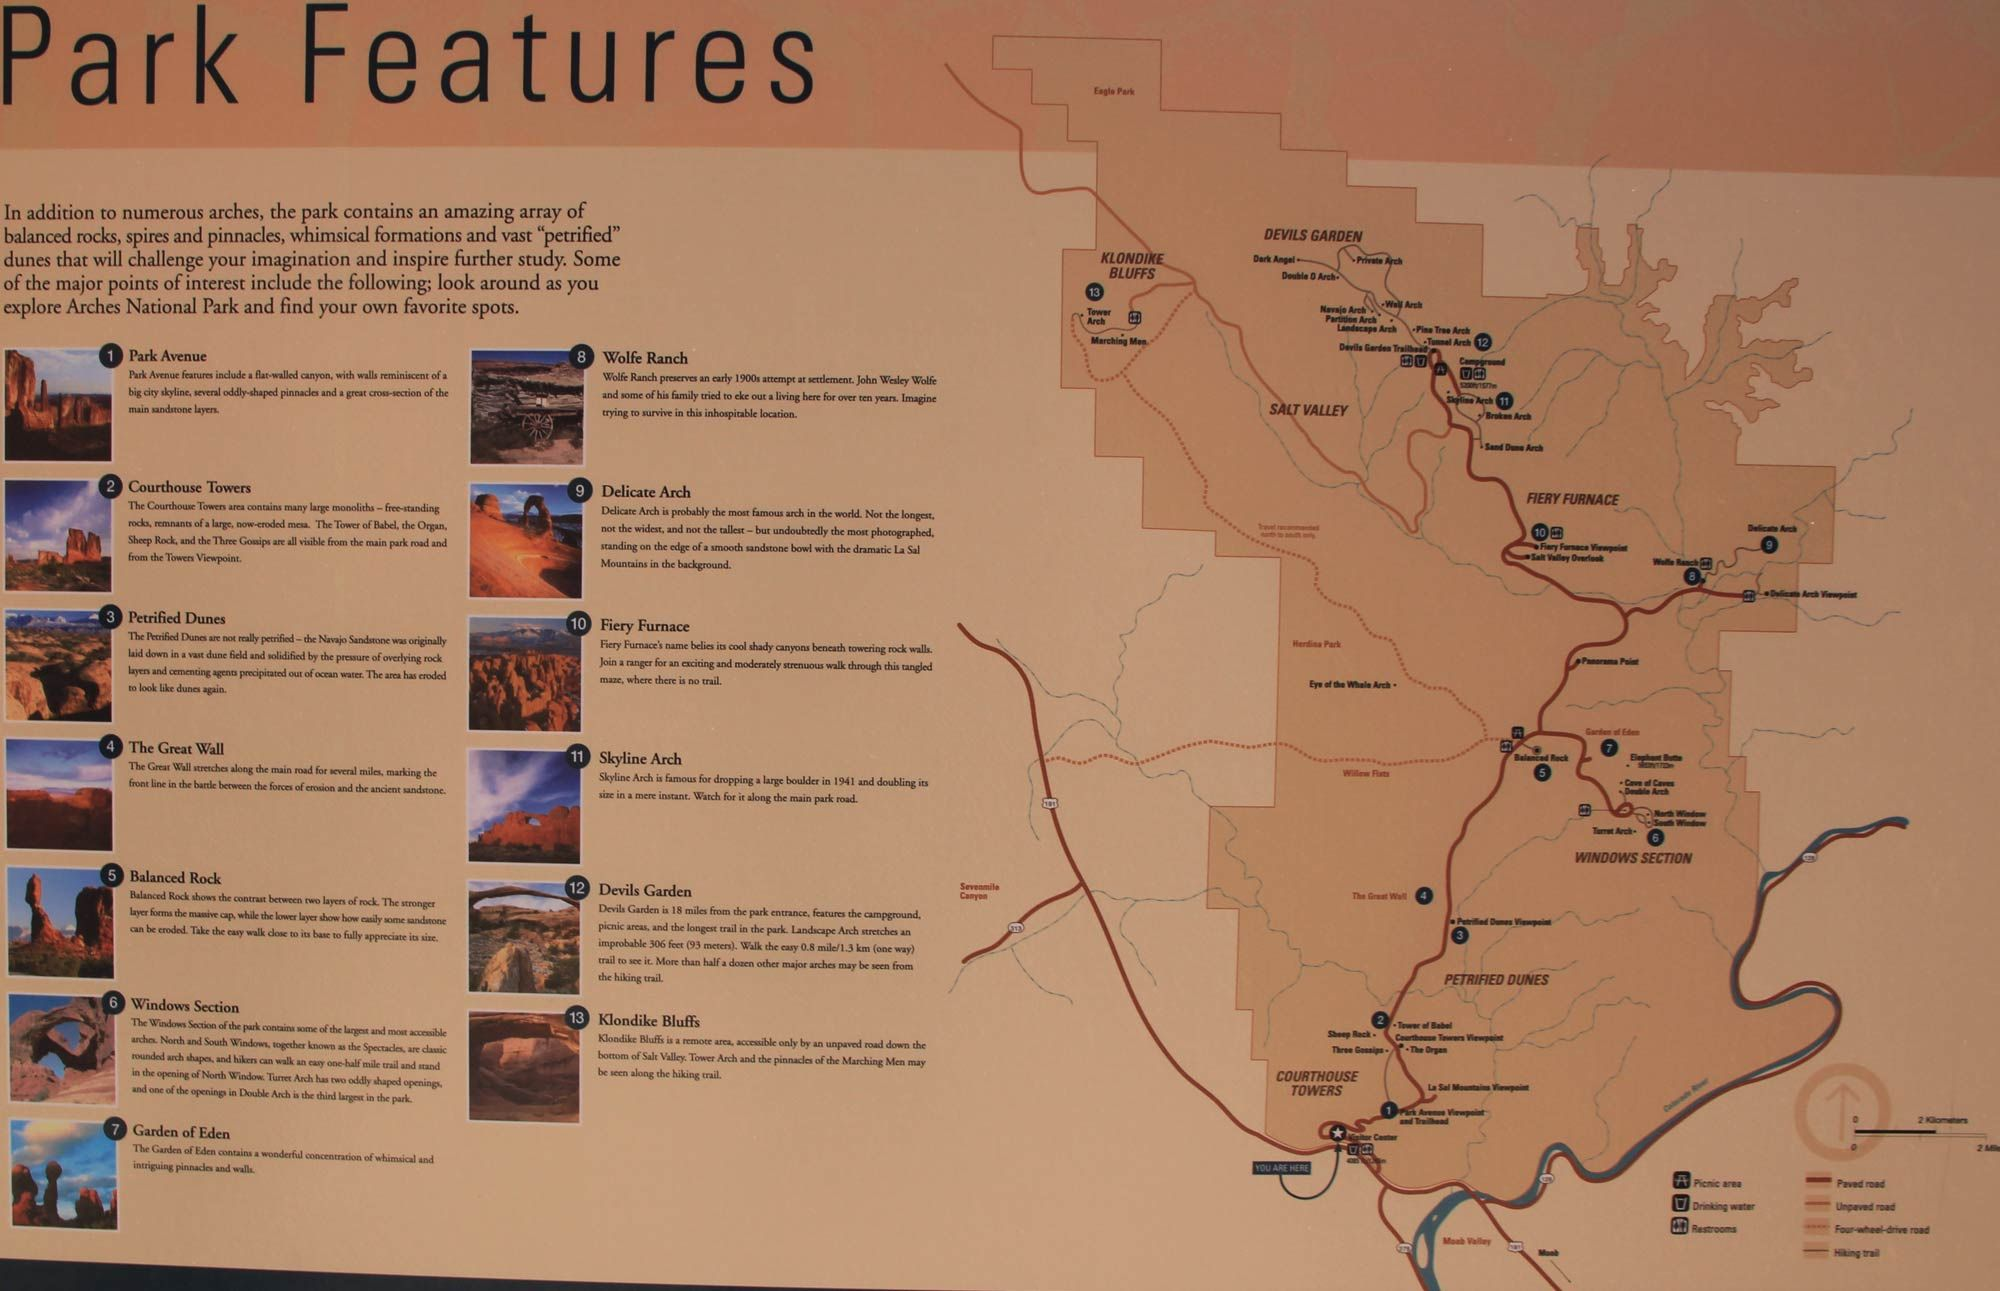 The Features of Arches National Park | Arches NP | National ... on amistad national recreation area map, death valley map, chamizal national memorial map, zion national park trail map, redwood national and state parks map, denali national park and preserve map, city of rocks national reserve map, moab map, monument valley map, devils garden map, antelope canyon map, lake clark national park and preserve map, bering land bridge national preserve map, hawaii volcanoes national park map, grand canyon map, canyonlands national park road map, arizona map, bryce canyon map, sequoia national park map, national park of american samoa map,